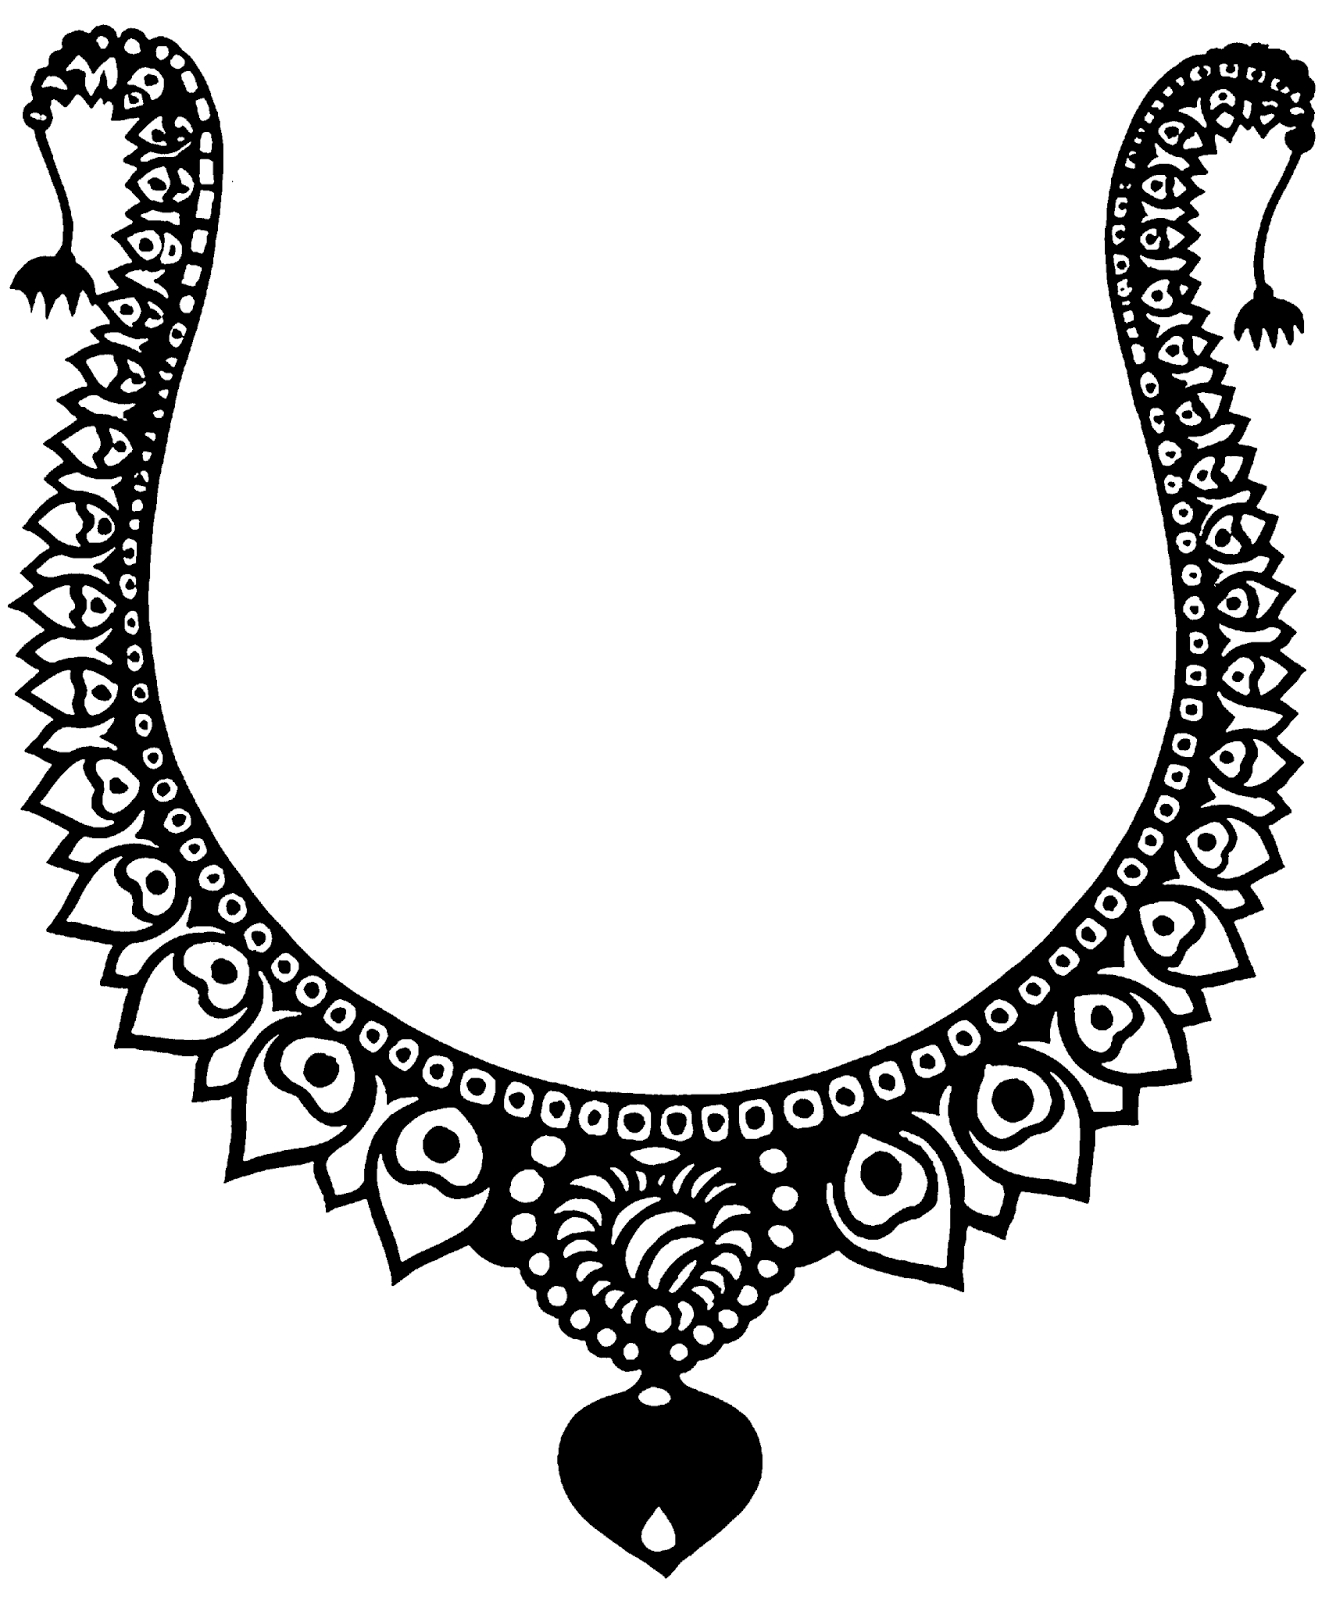 Jewelry clipart. Clip art black and